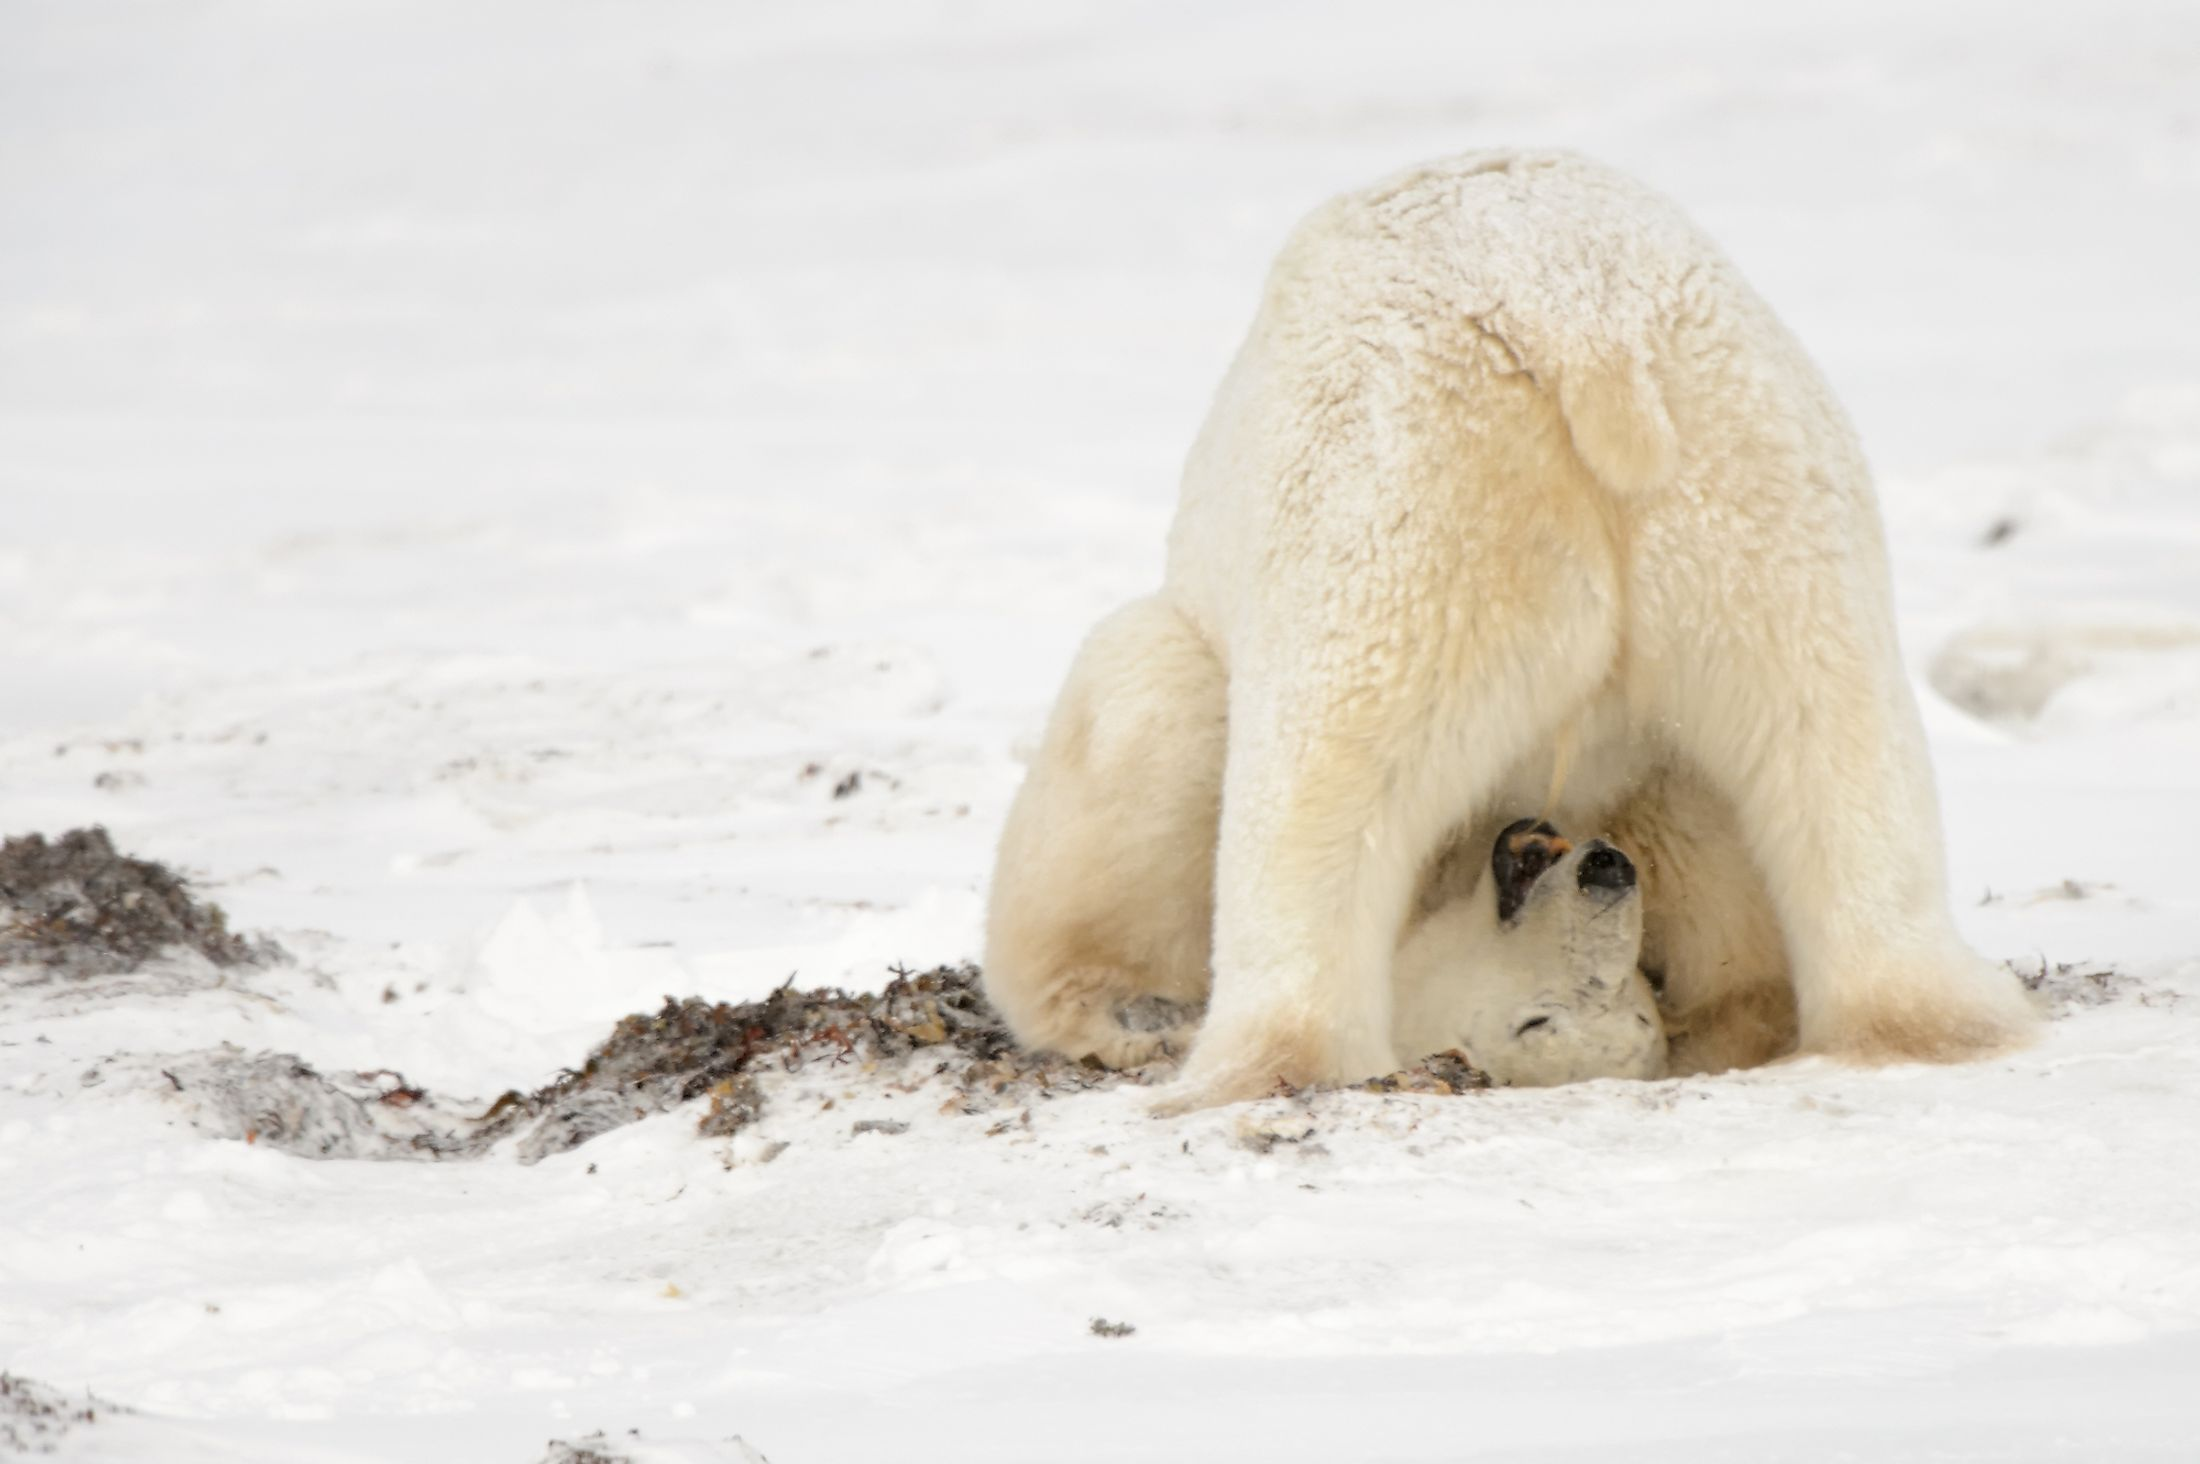 A polar bear in a playful mood. Image credit: NaturesMomentsuk/Shutterstock.com